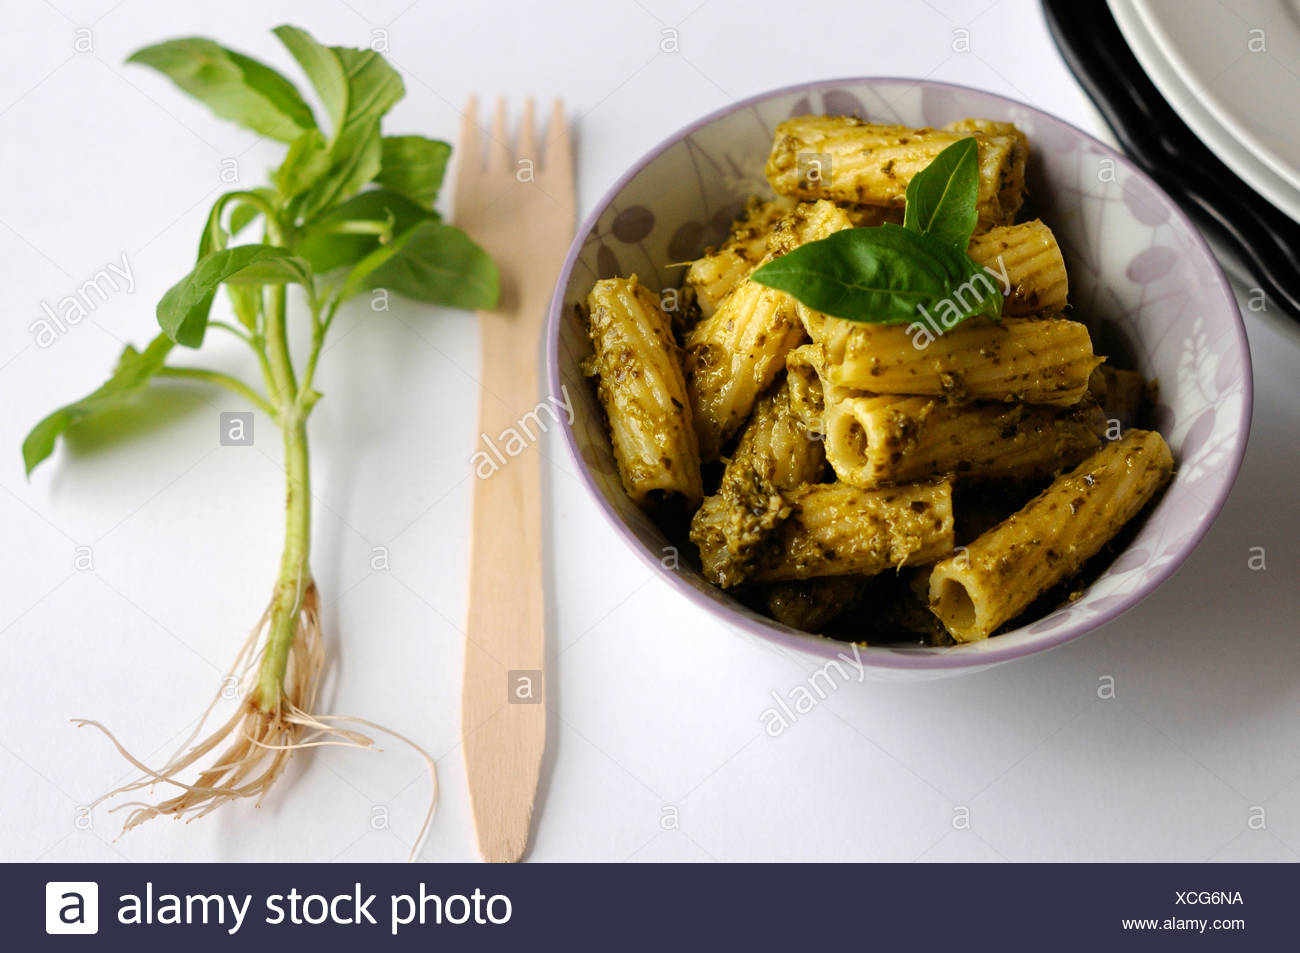 Rigatoni pasta with pesto genovese - Stock Image